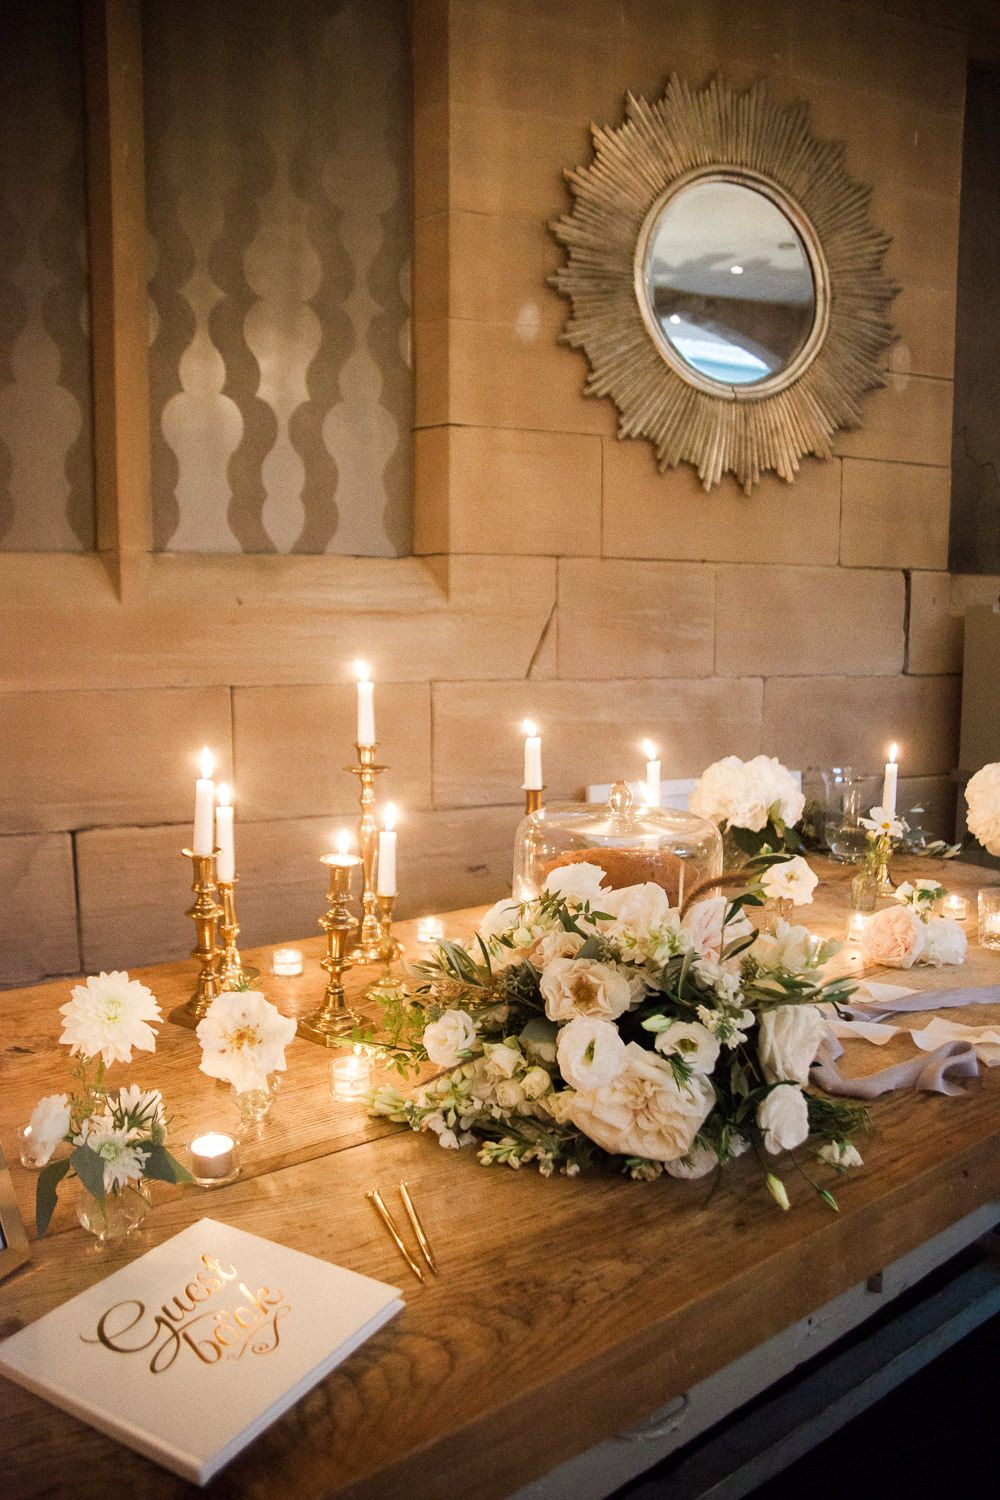 Candle Light Guest Book Table Wedding Guest Book Table Guest Book Table Romantic Wedding Decor